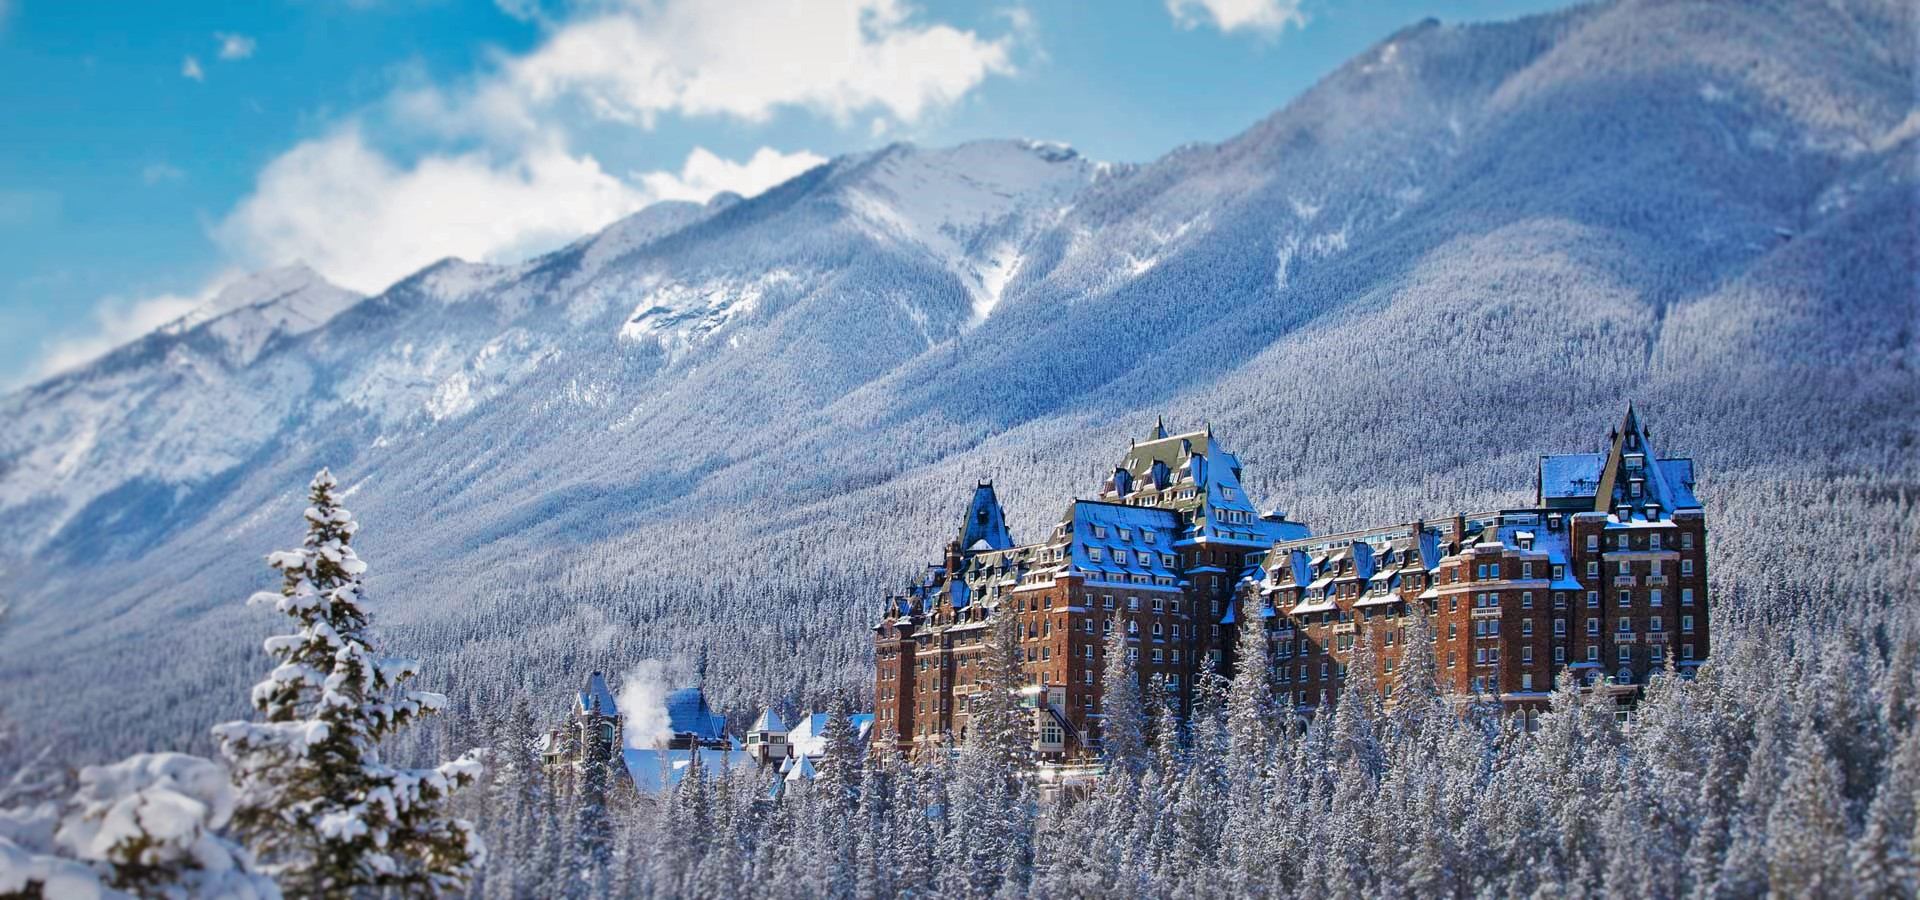 Available Hotel Rooms In Banff